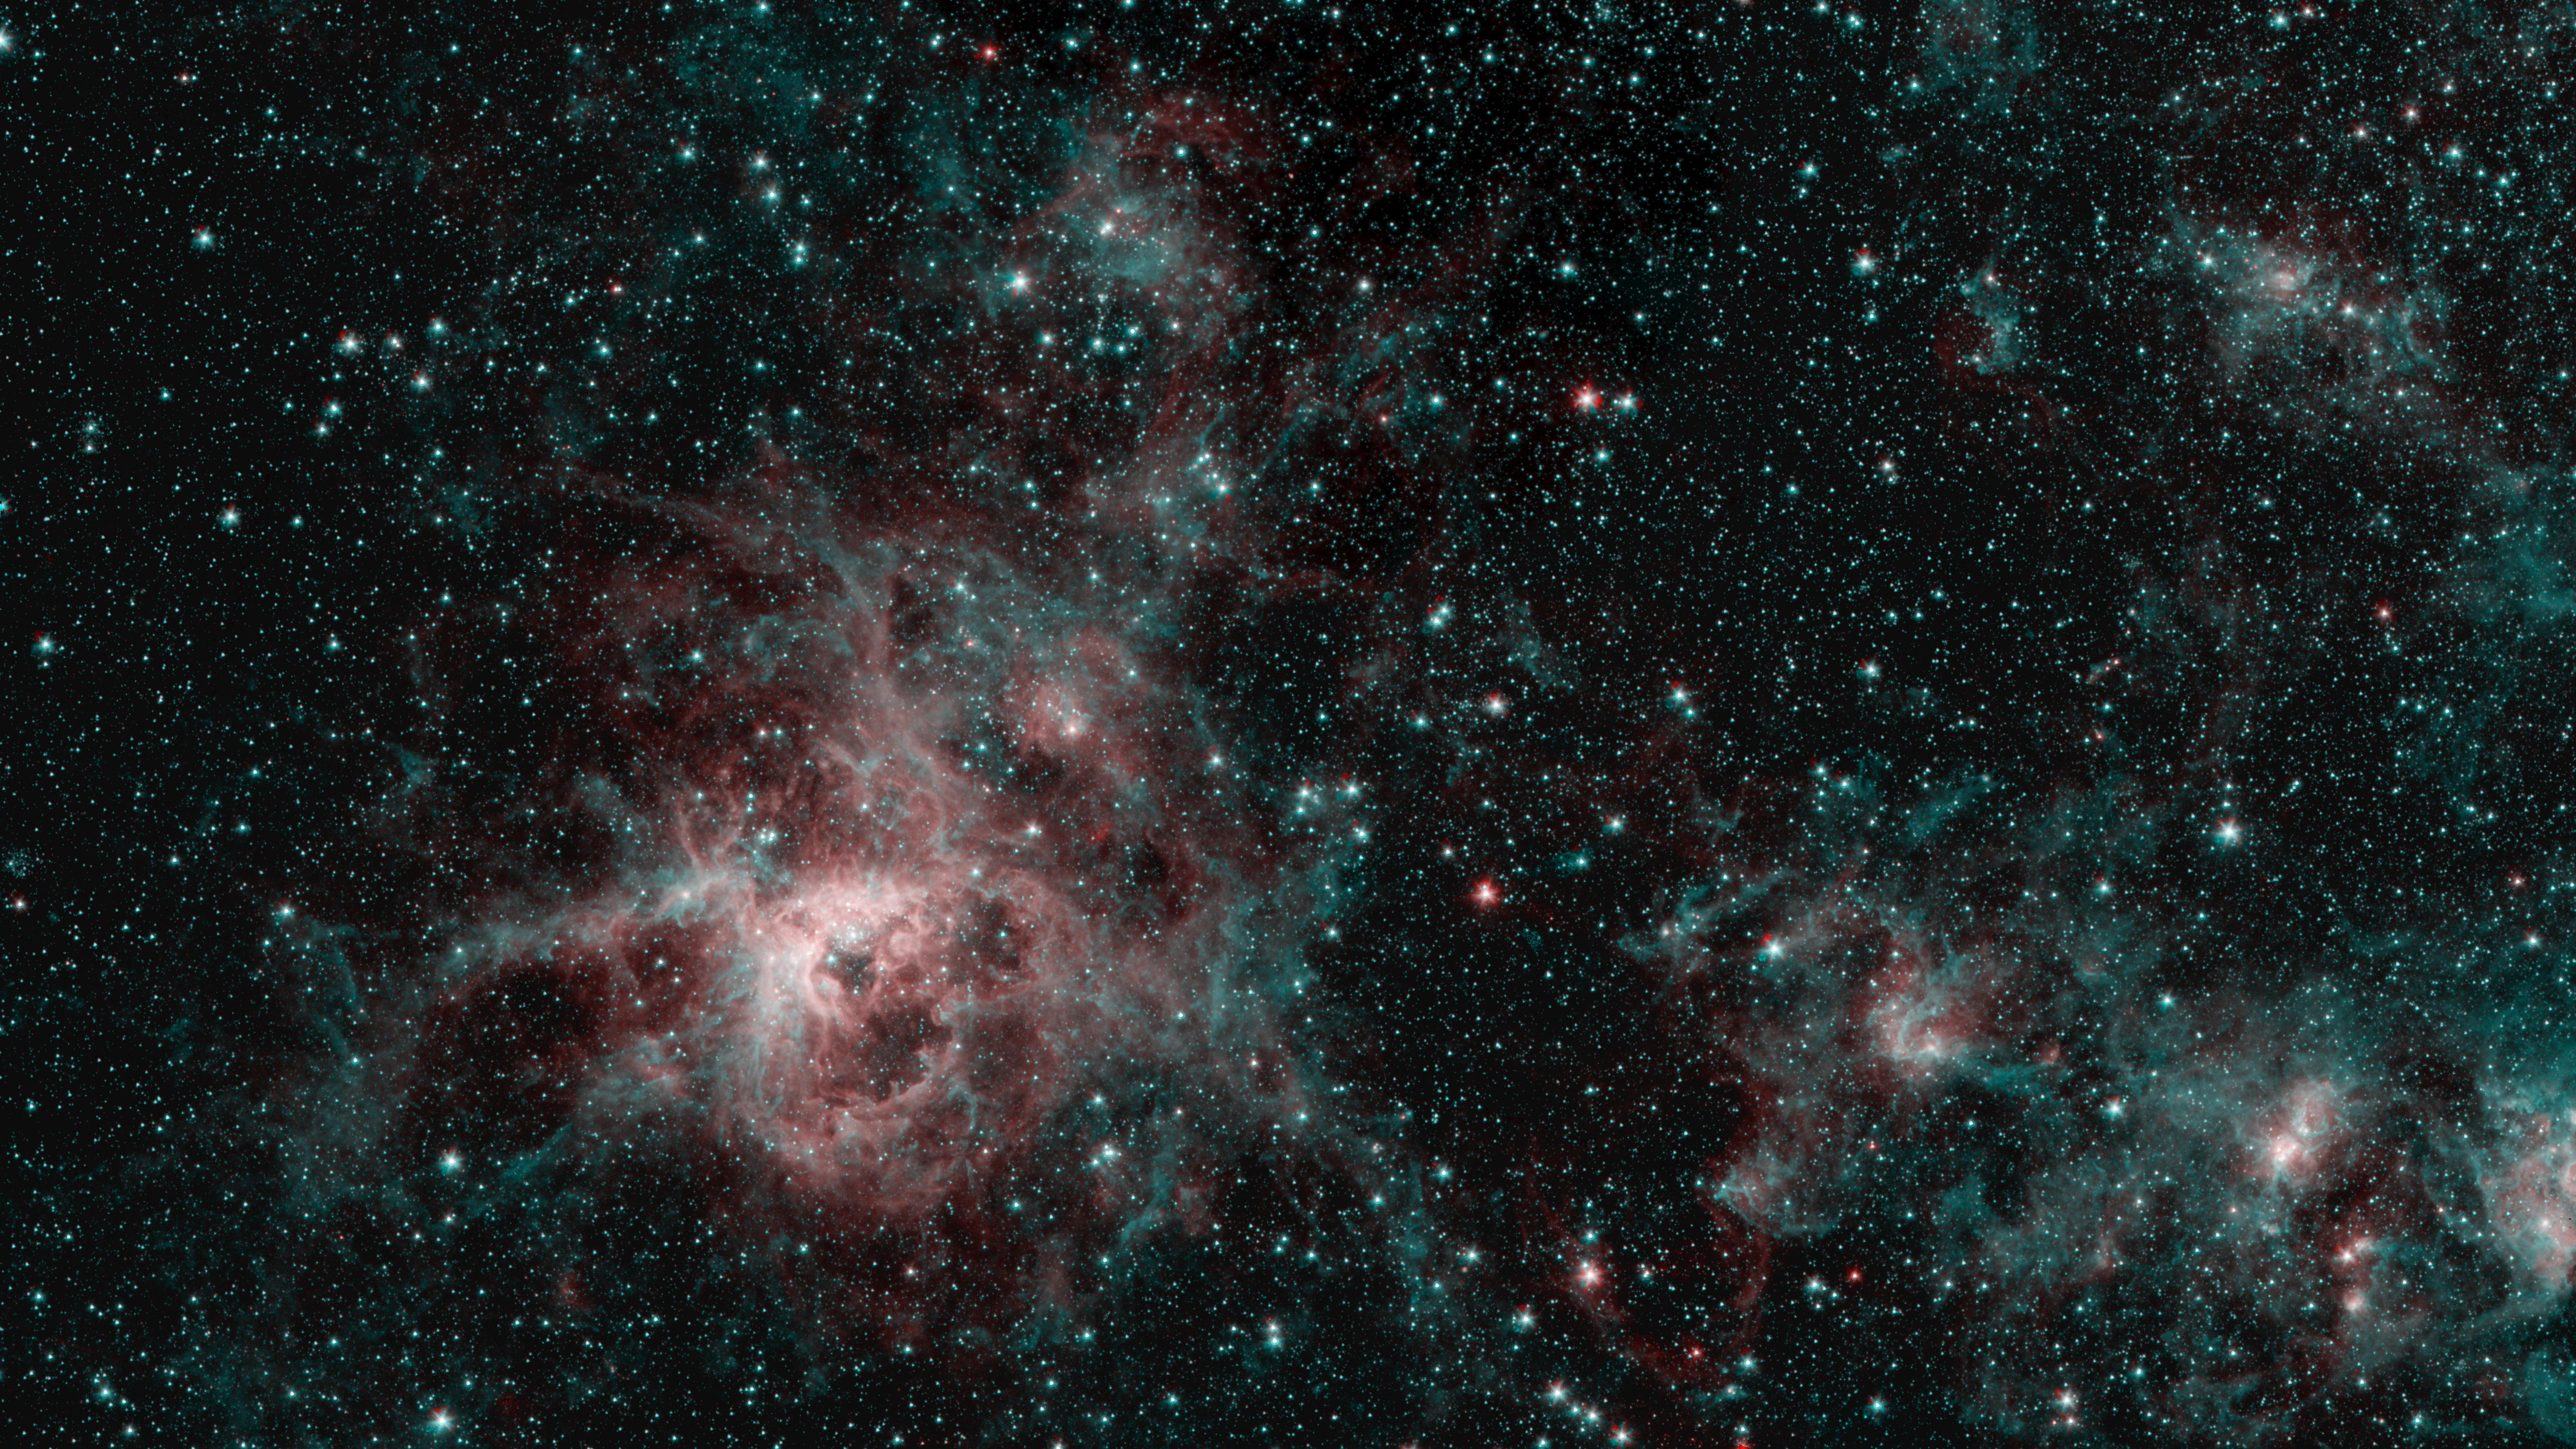 This image from NASAs Spitzer Space Telescope shows the Tarantula Nebula in two wavelengths of infrared light, each represented by a different color.